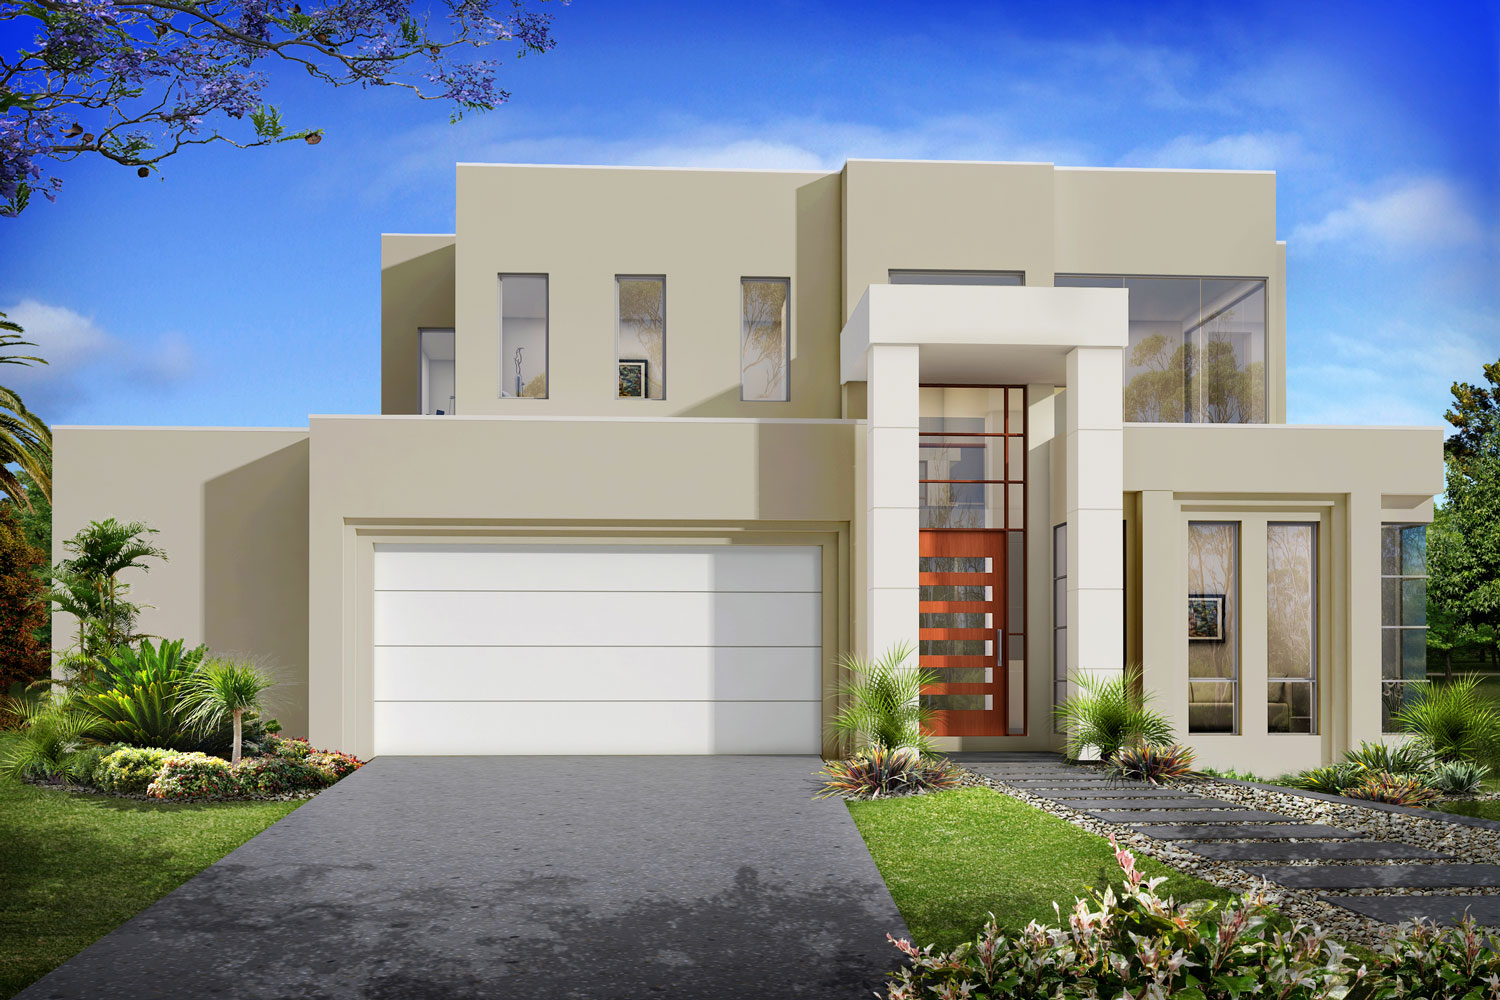 Copyright 2012 Elandra Homes Pty Ltd